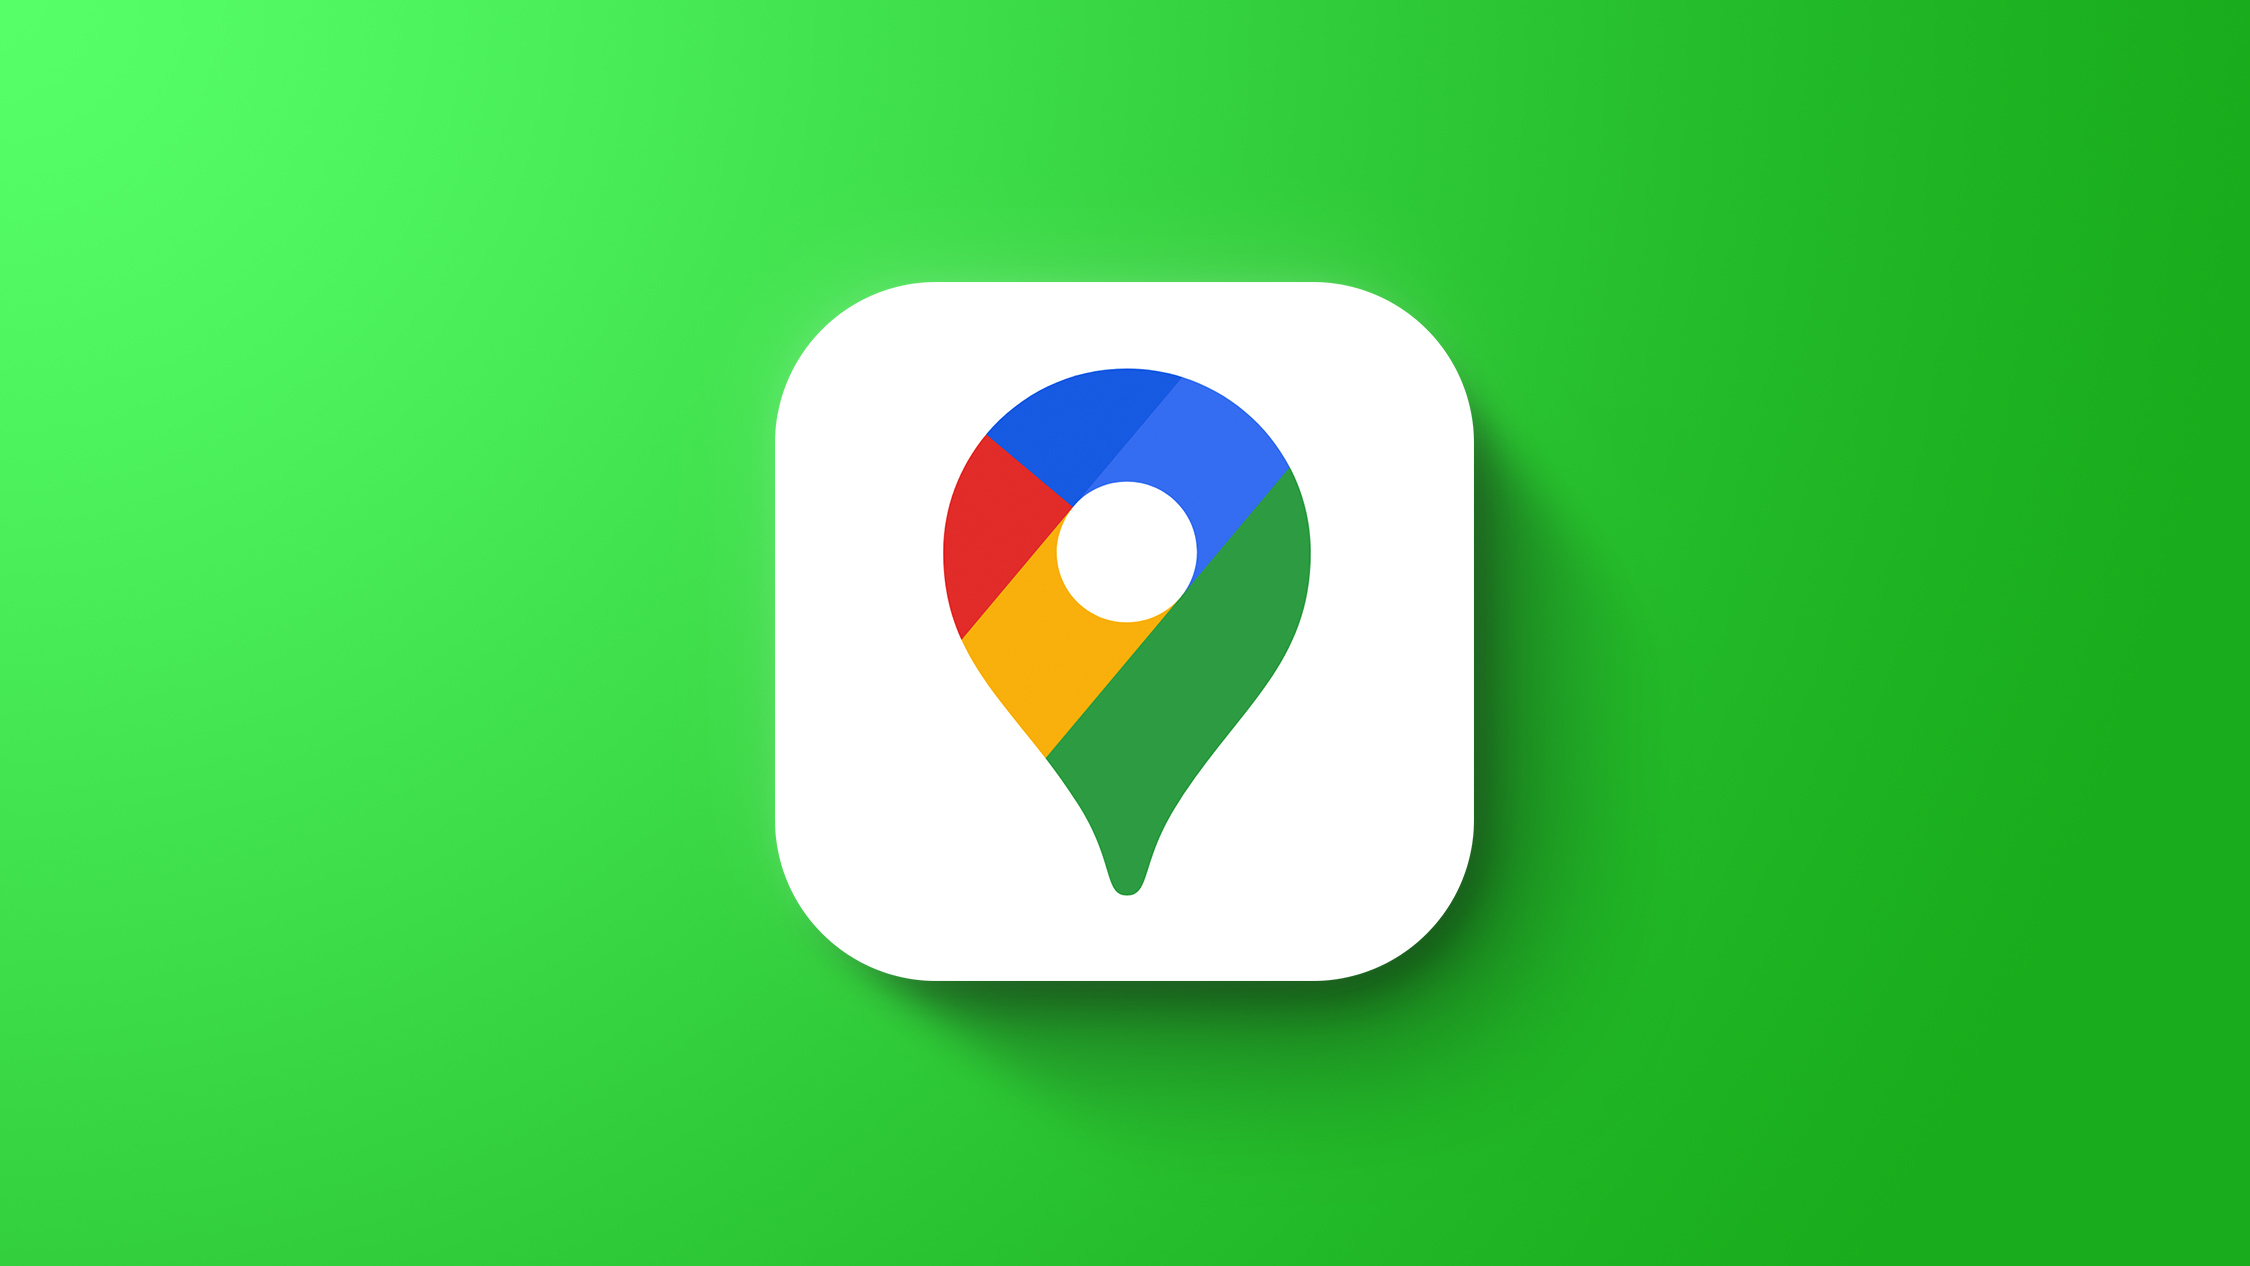 Google maps feaure green